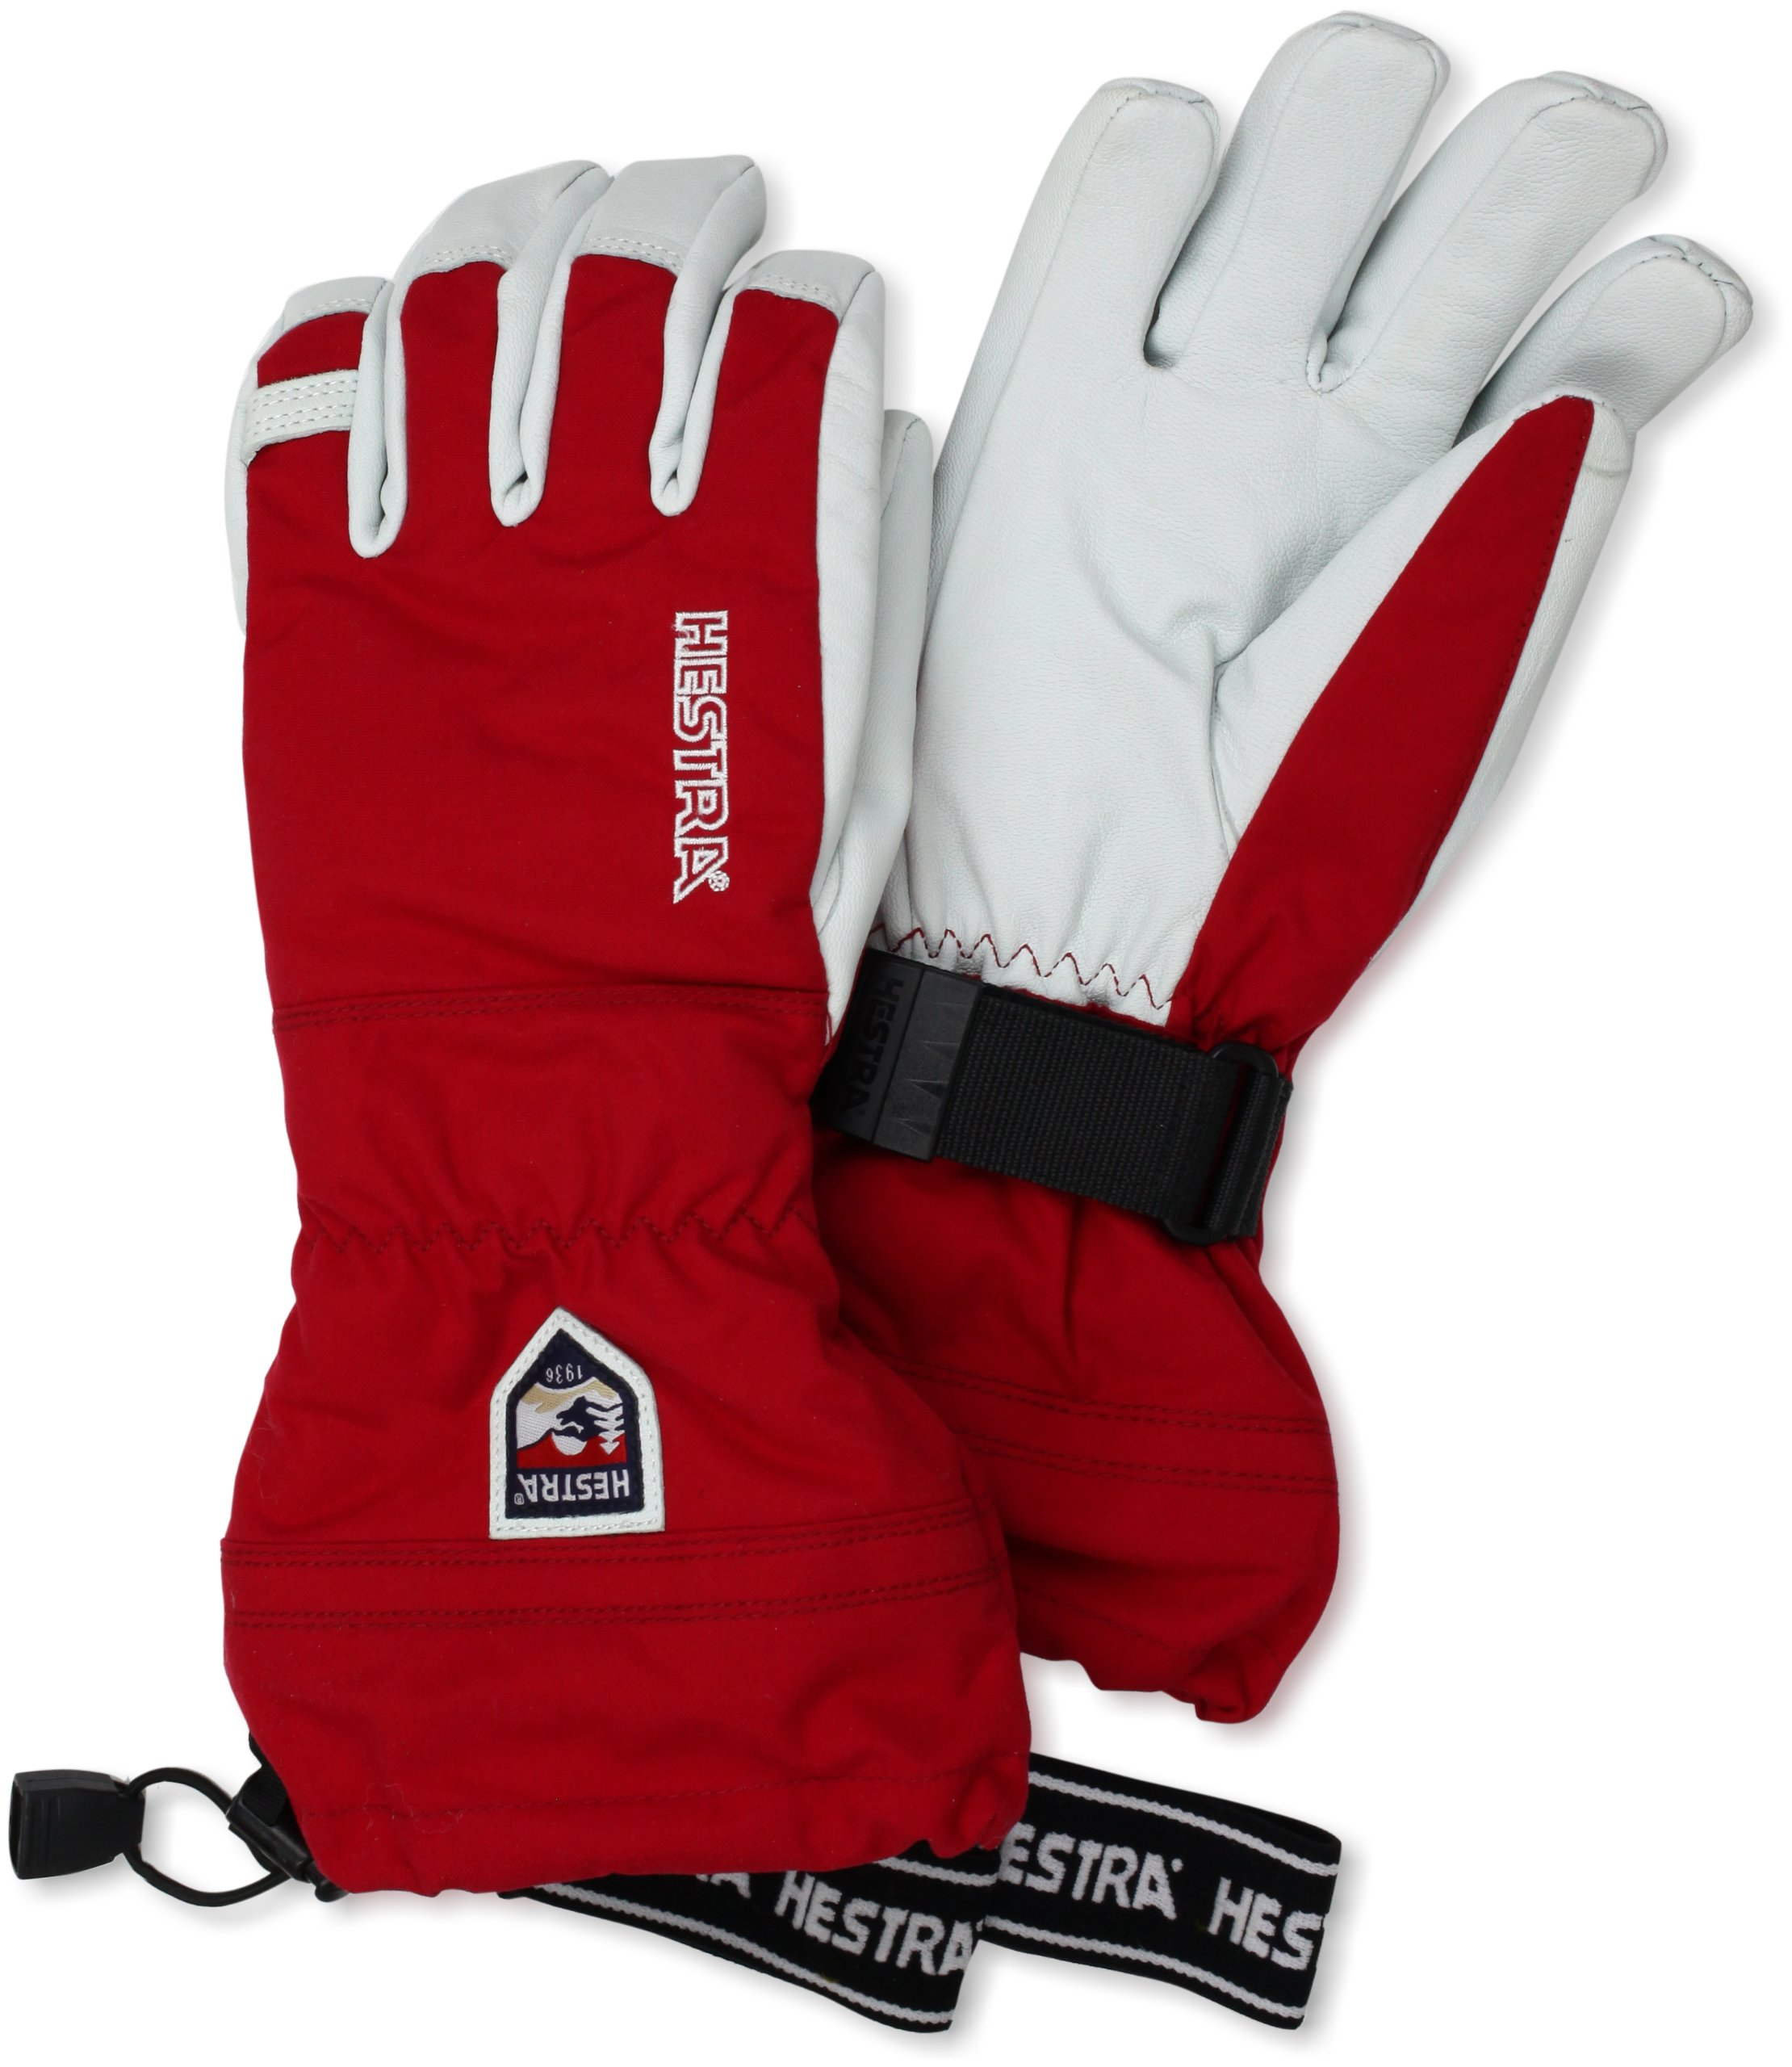 Hestra Army Leather Heli Ski and Ride Glove with Gauntlet,Red,10 by Hestra